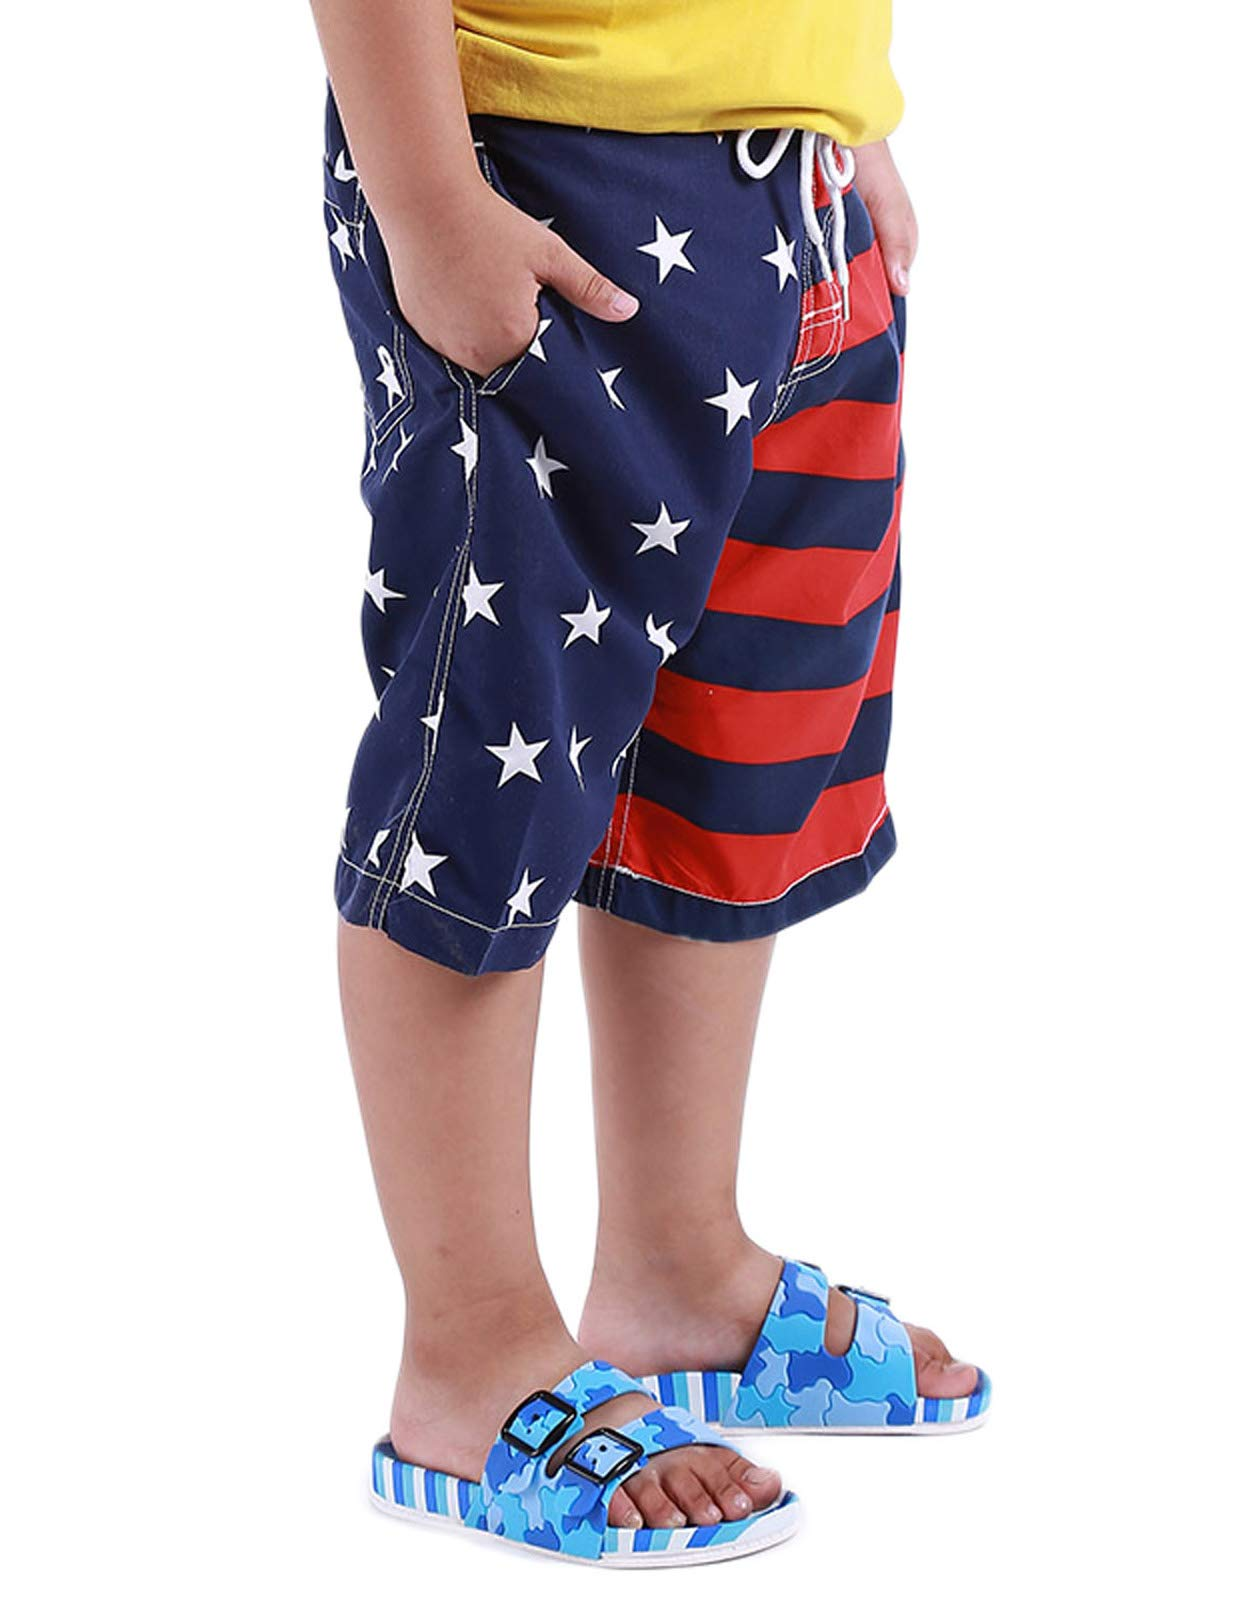 Danna Belle Boys Swim Shorts Stars and Stripes American Flag Swimming Trunk 7-8Yrs DB50-2 by Danna Belle (Image #4)